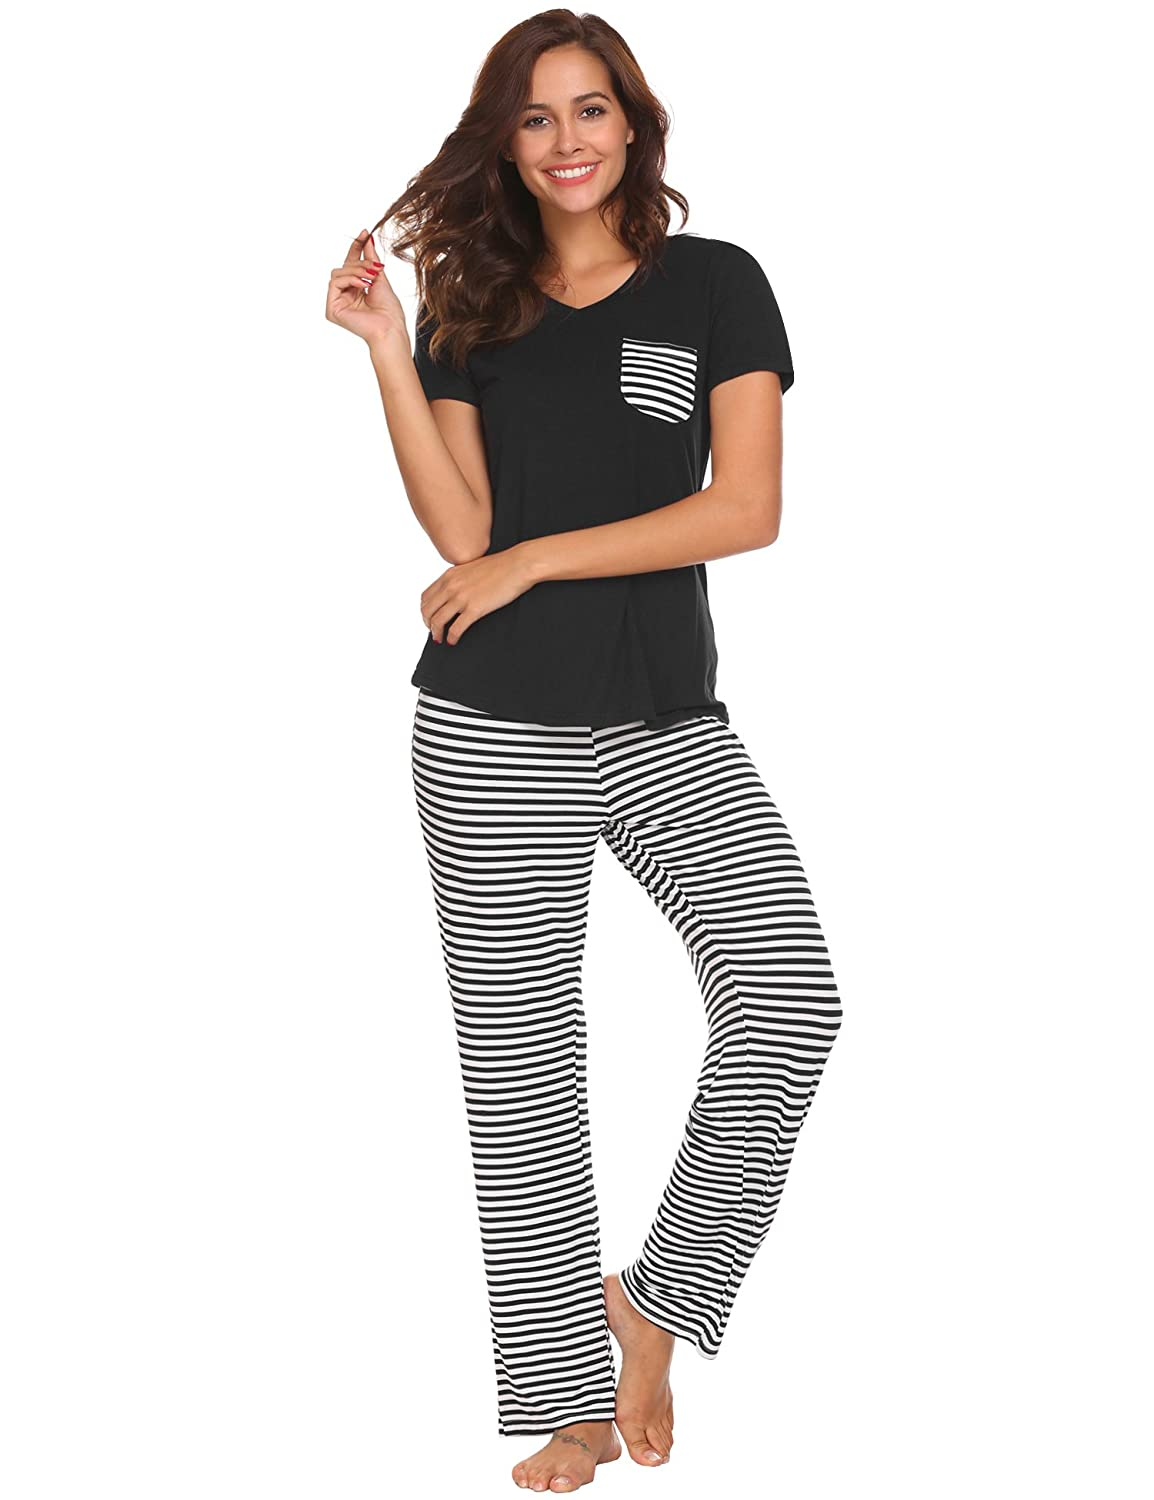 Hotouch Womens Pajama Set Striped Short Sleeve Top   Pants Sleepwear Pjs  Sets at Amazon Women s Clothing store  9088beb2f